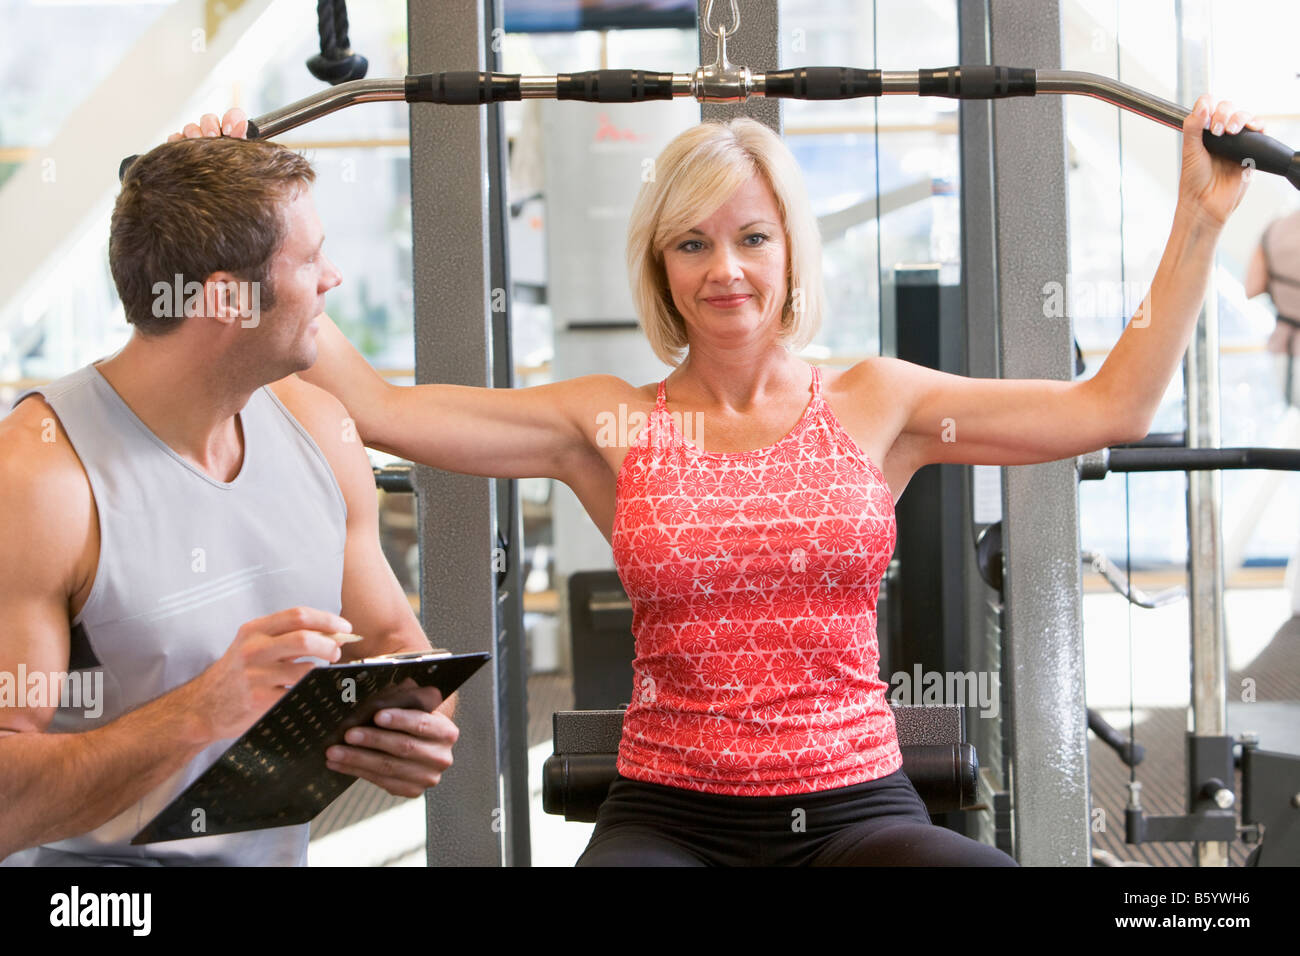 Personal Trainer Watching Woman Weight Train - Stock Image